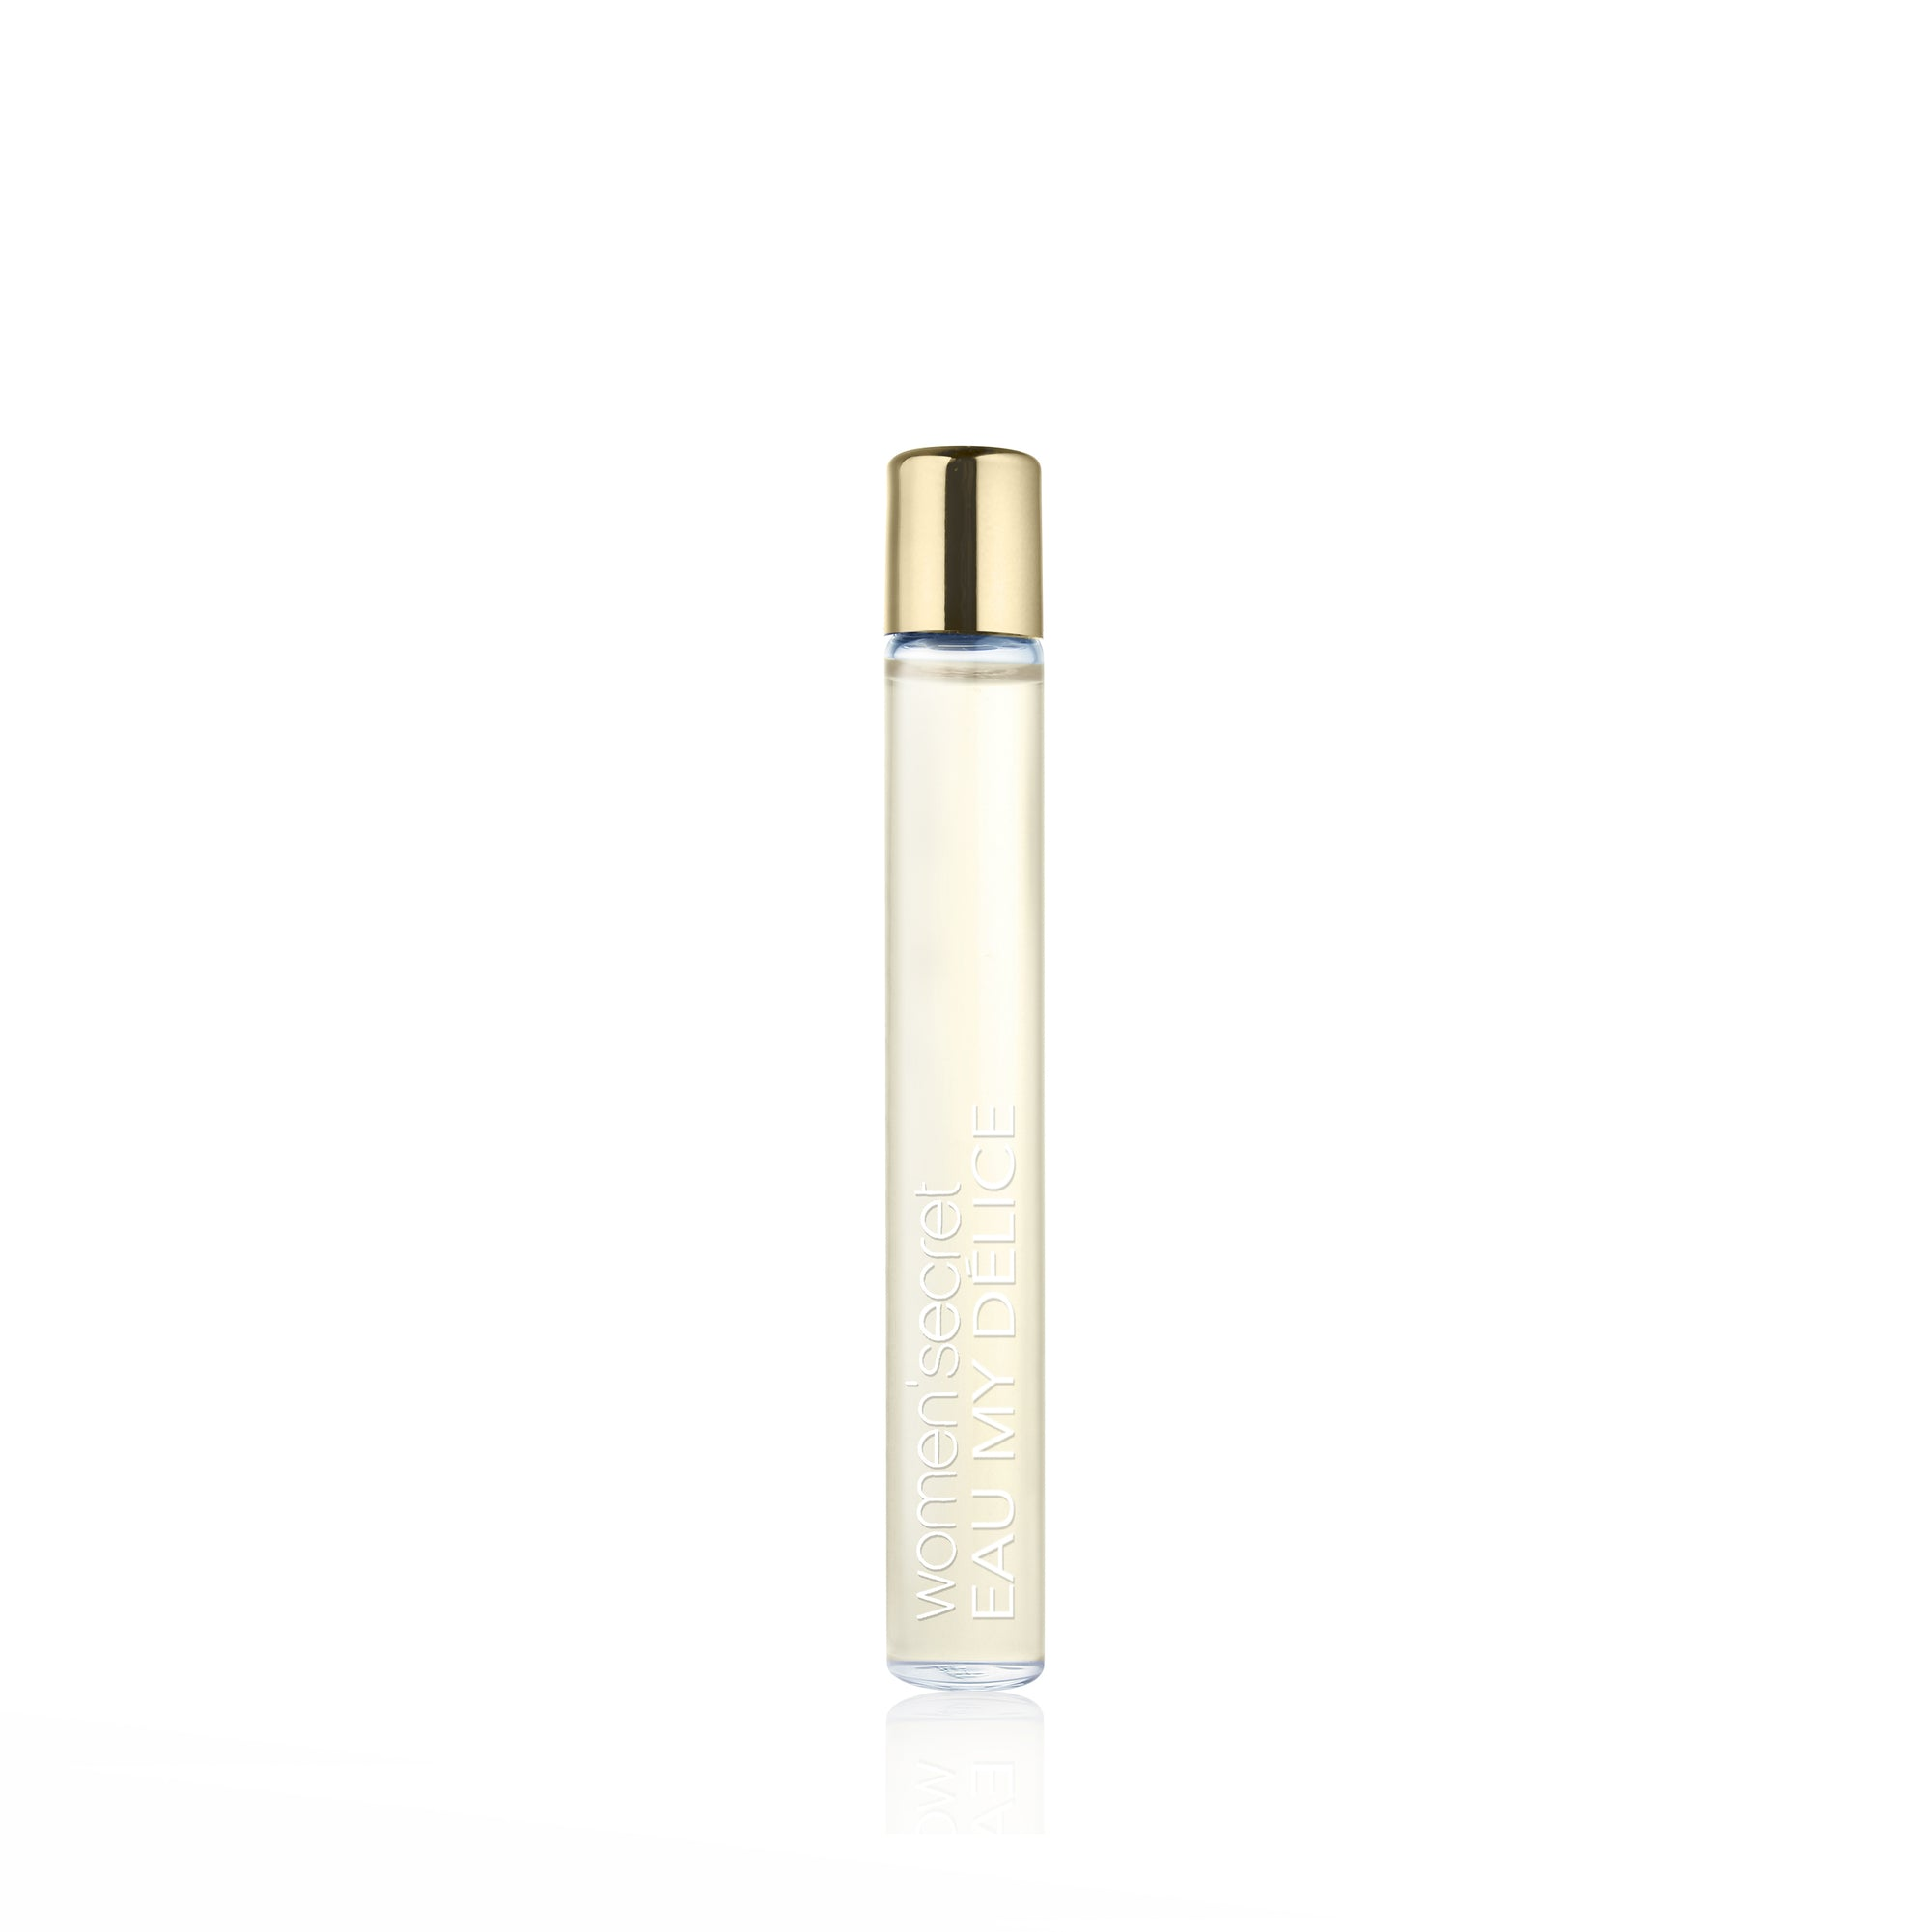 Women's Secret Eau My Delice Roll On